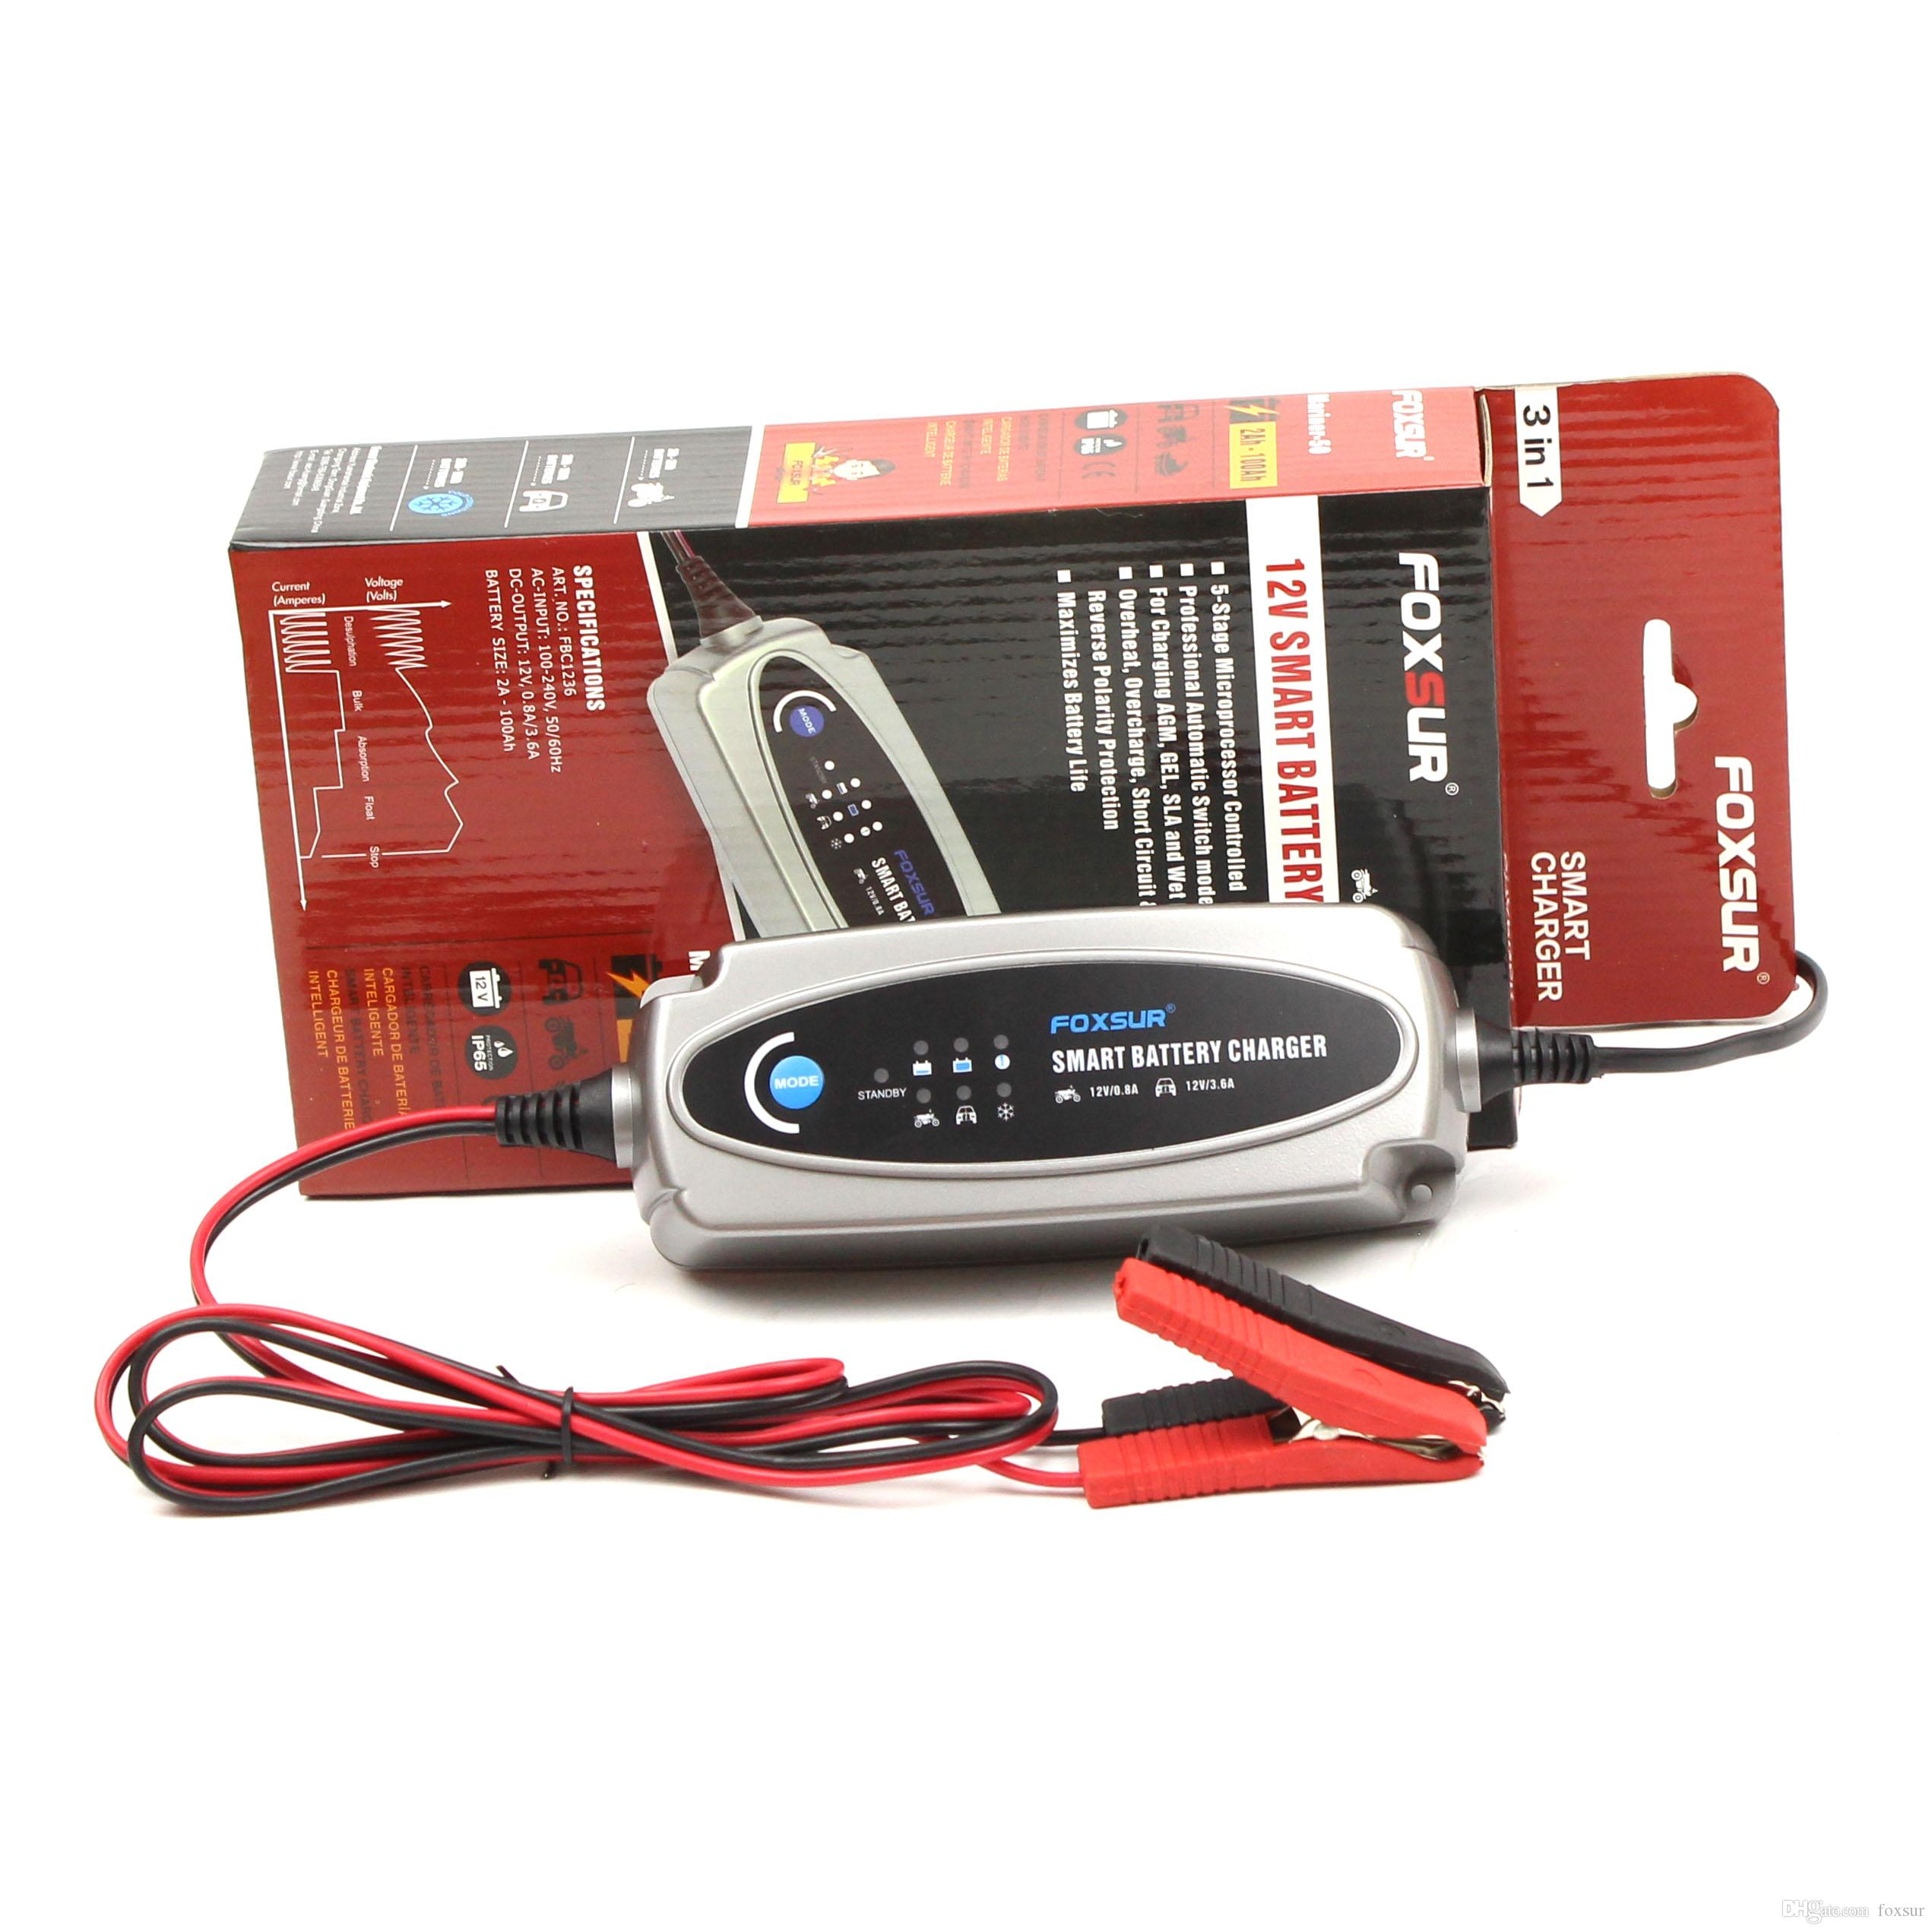 Foxsur 12v 3 6a Or 12v 0 8a Car Motorcycle Battery Charger Lead